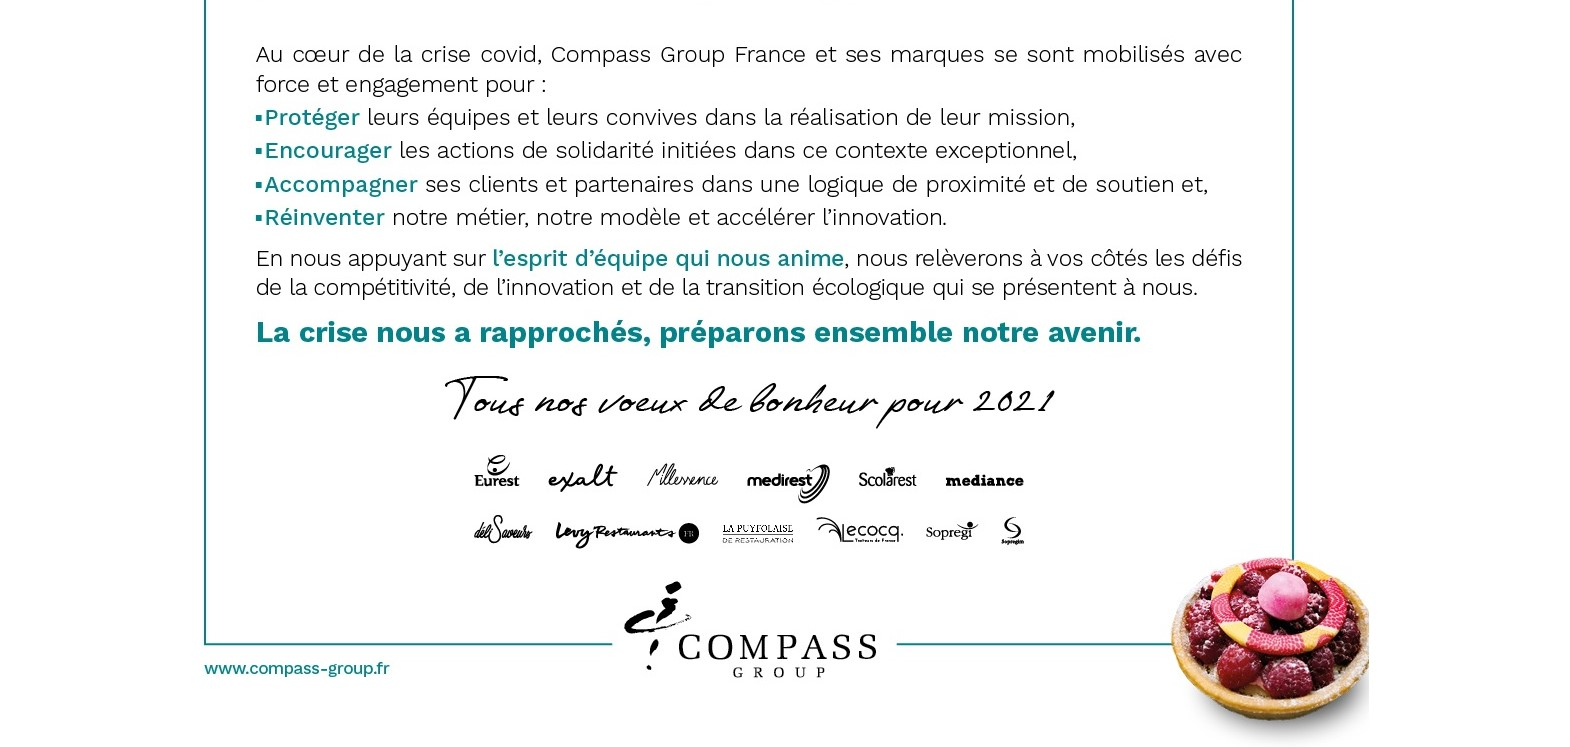 Voeux Compass Group France 2021